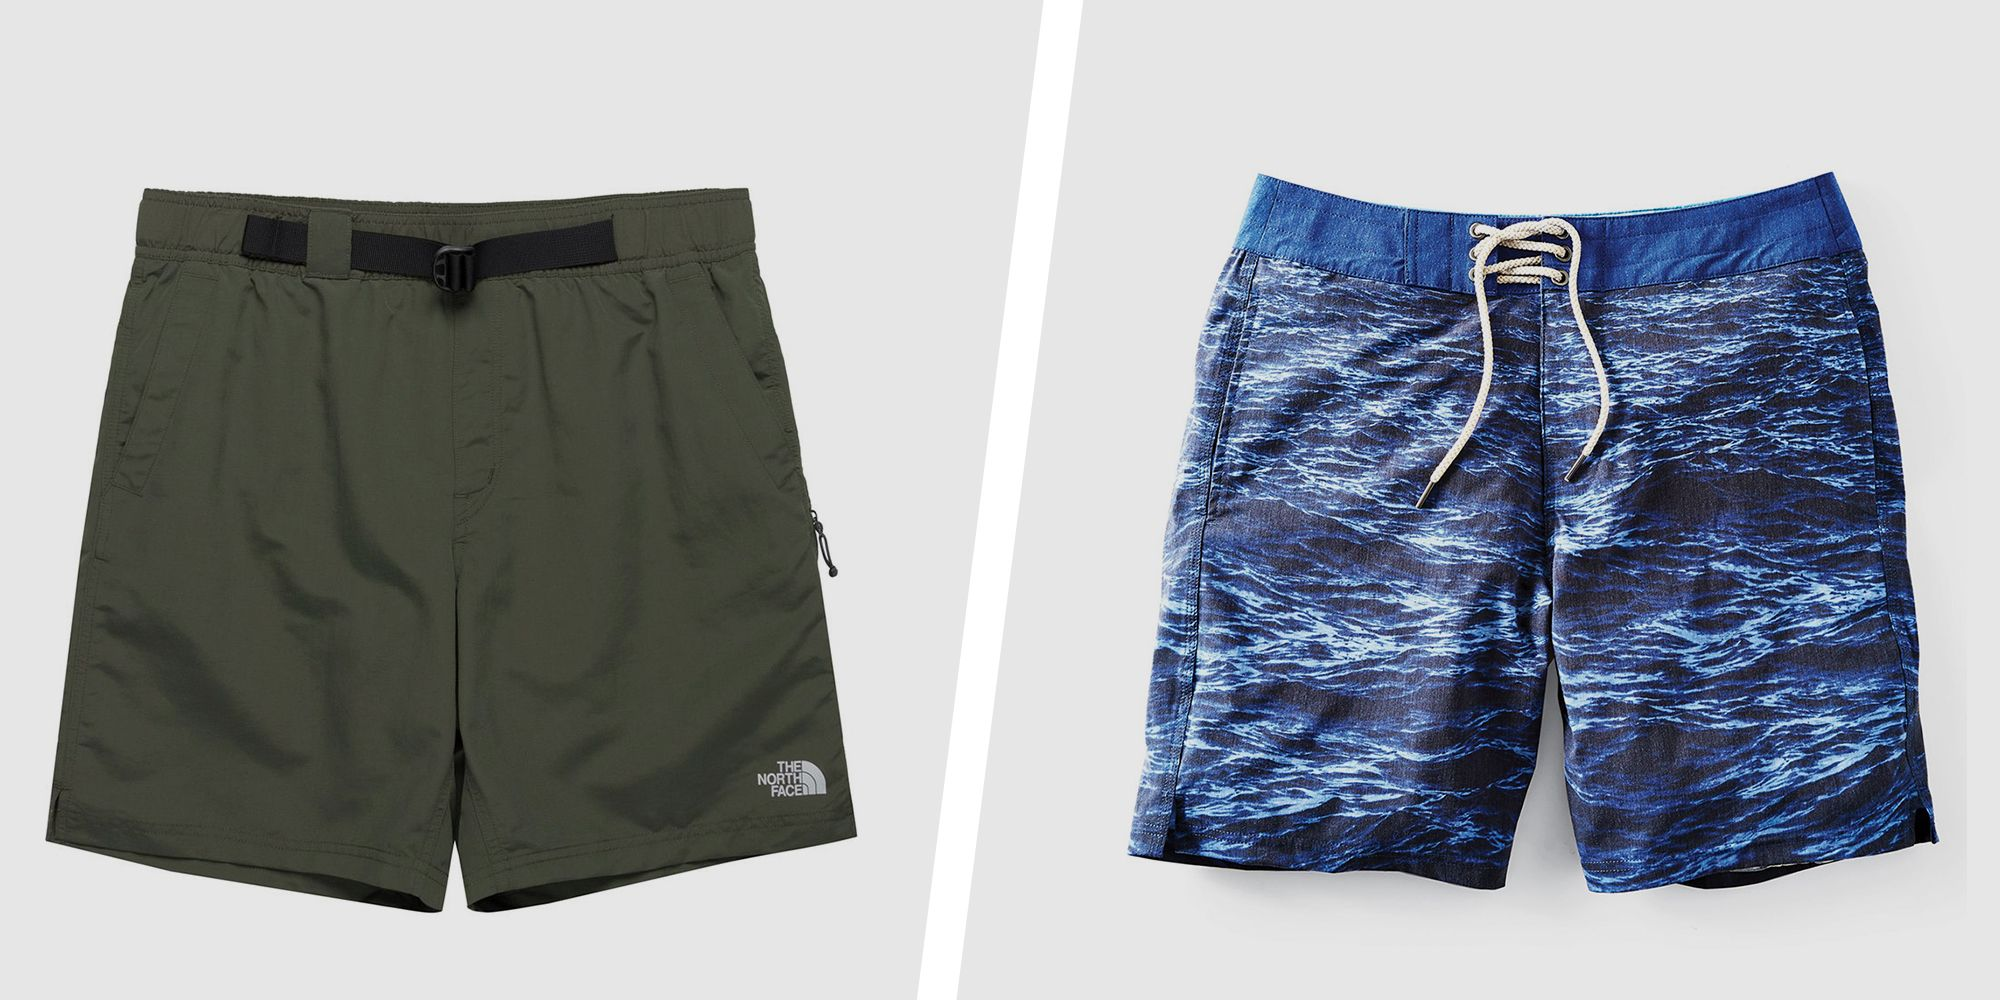 a87aafccb 26 Best New Swimsuits For 2019 - Best Men's Swim Trunks